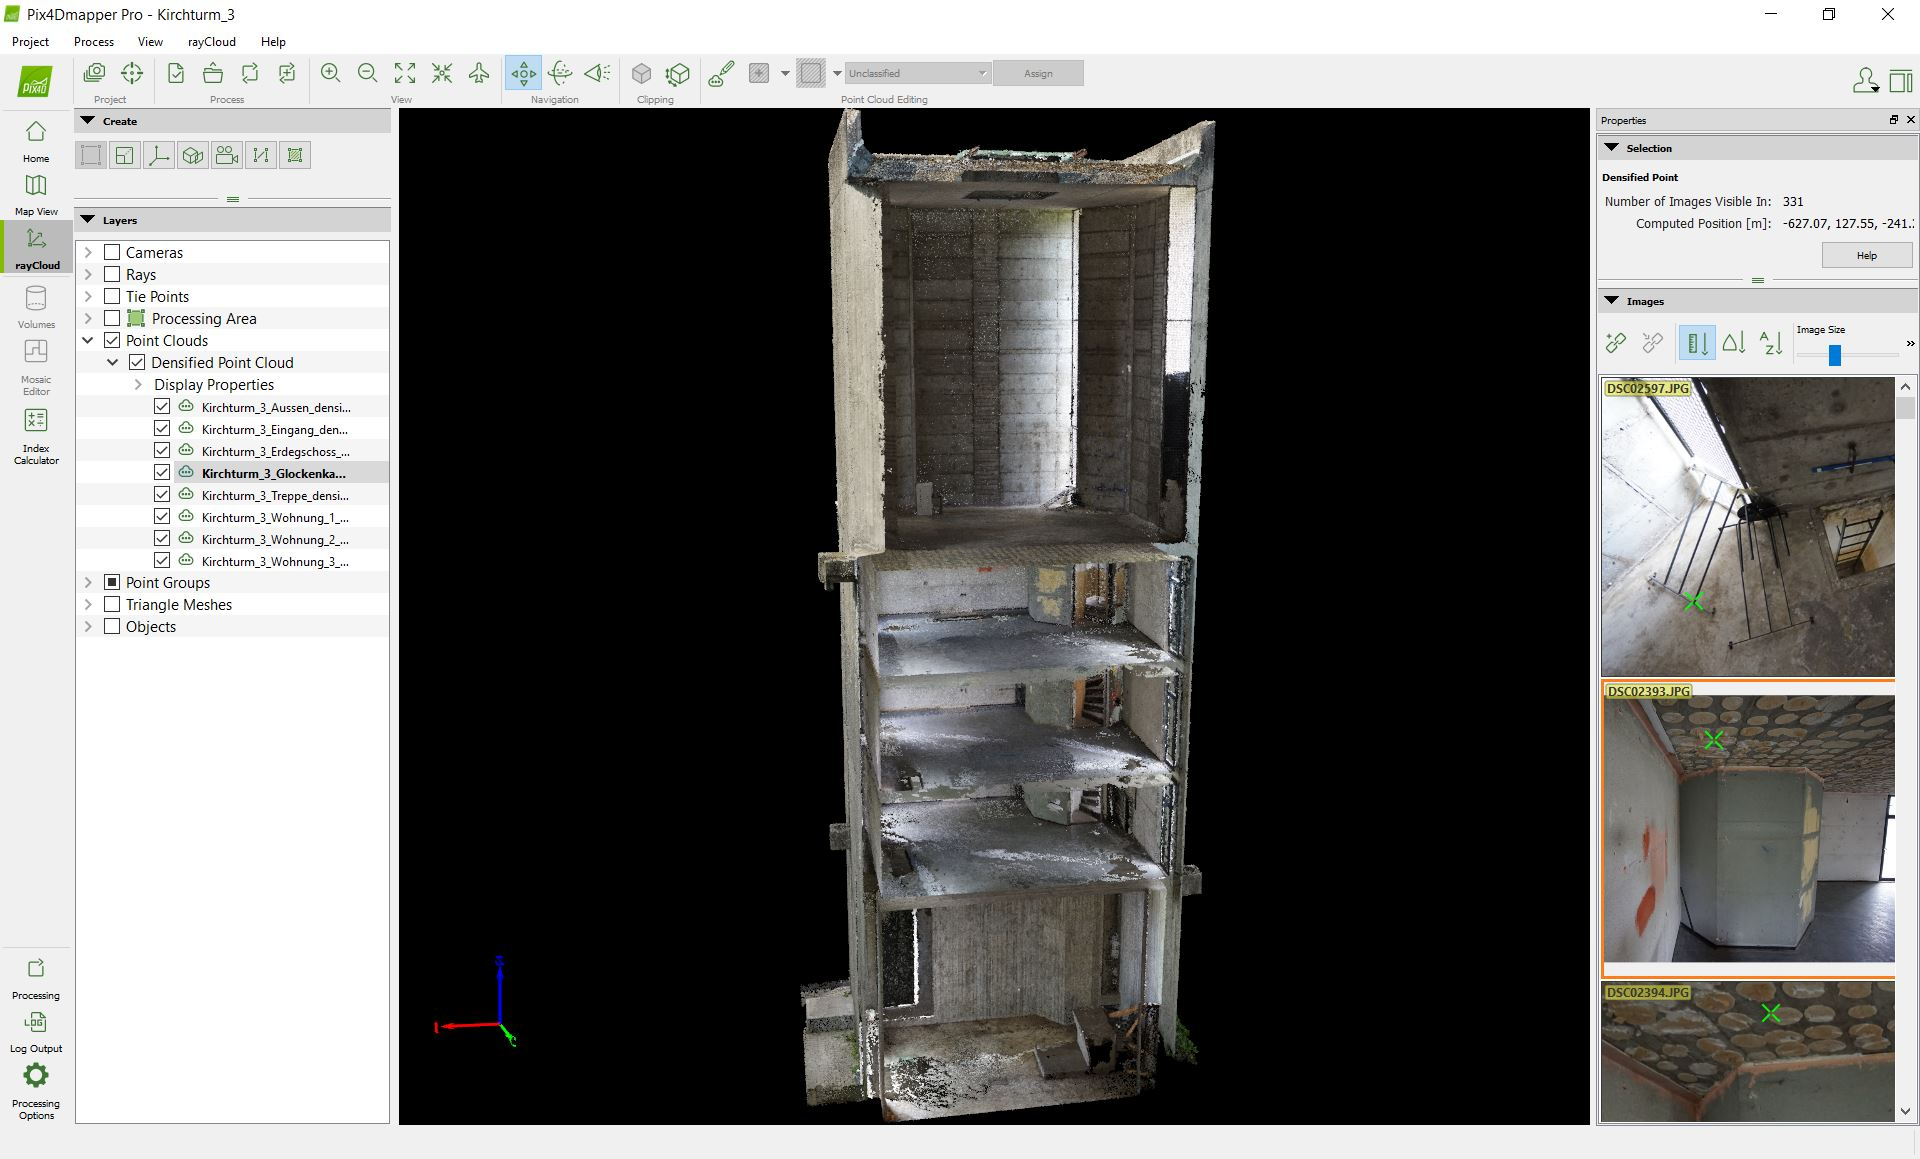 point cloud on Pix4Dmapper photogrammetry software interface